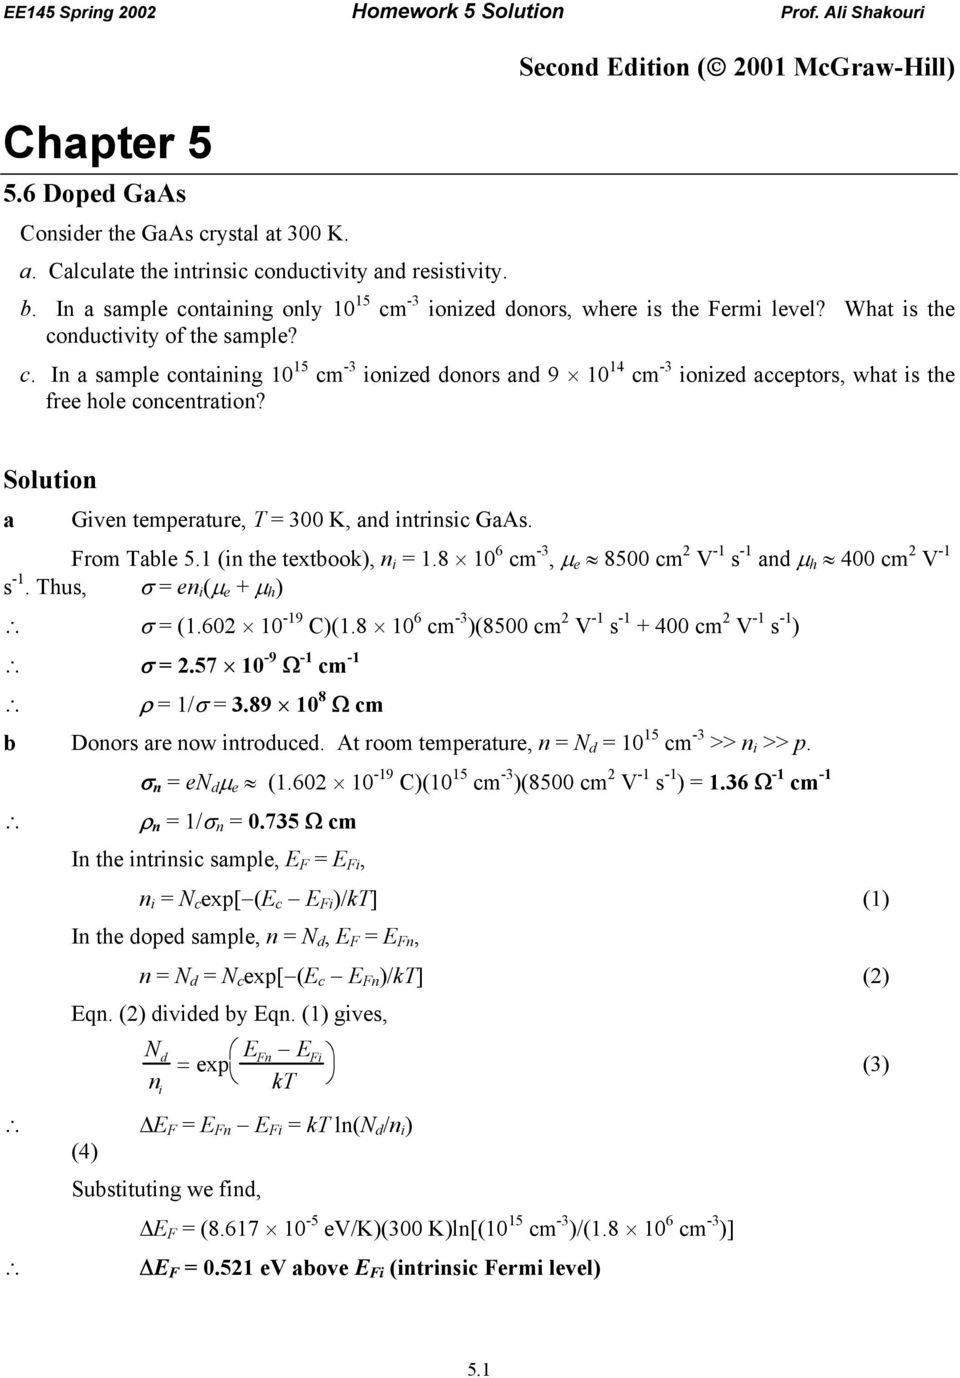 Solution a Given temperature, T = 300 K, and intrinsic GaAs. From Table 5.1 (in the textbook), n i = 1.8 10 6 cm -3, µ e 8500 cm 2 V -1 s -1 and µ h 400 cm 2 V -1 s -1.